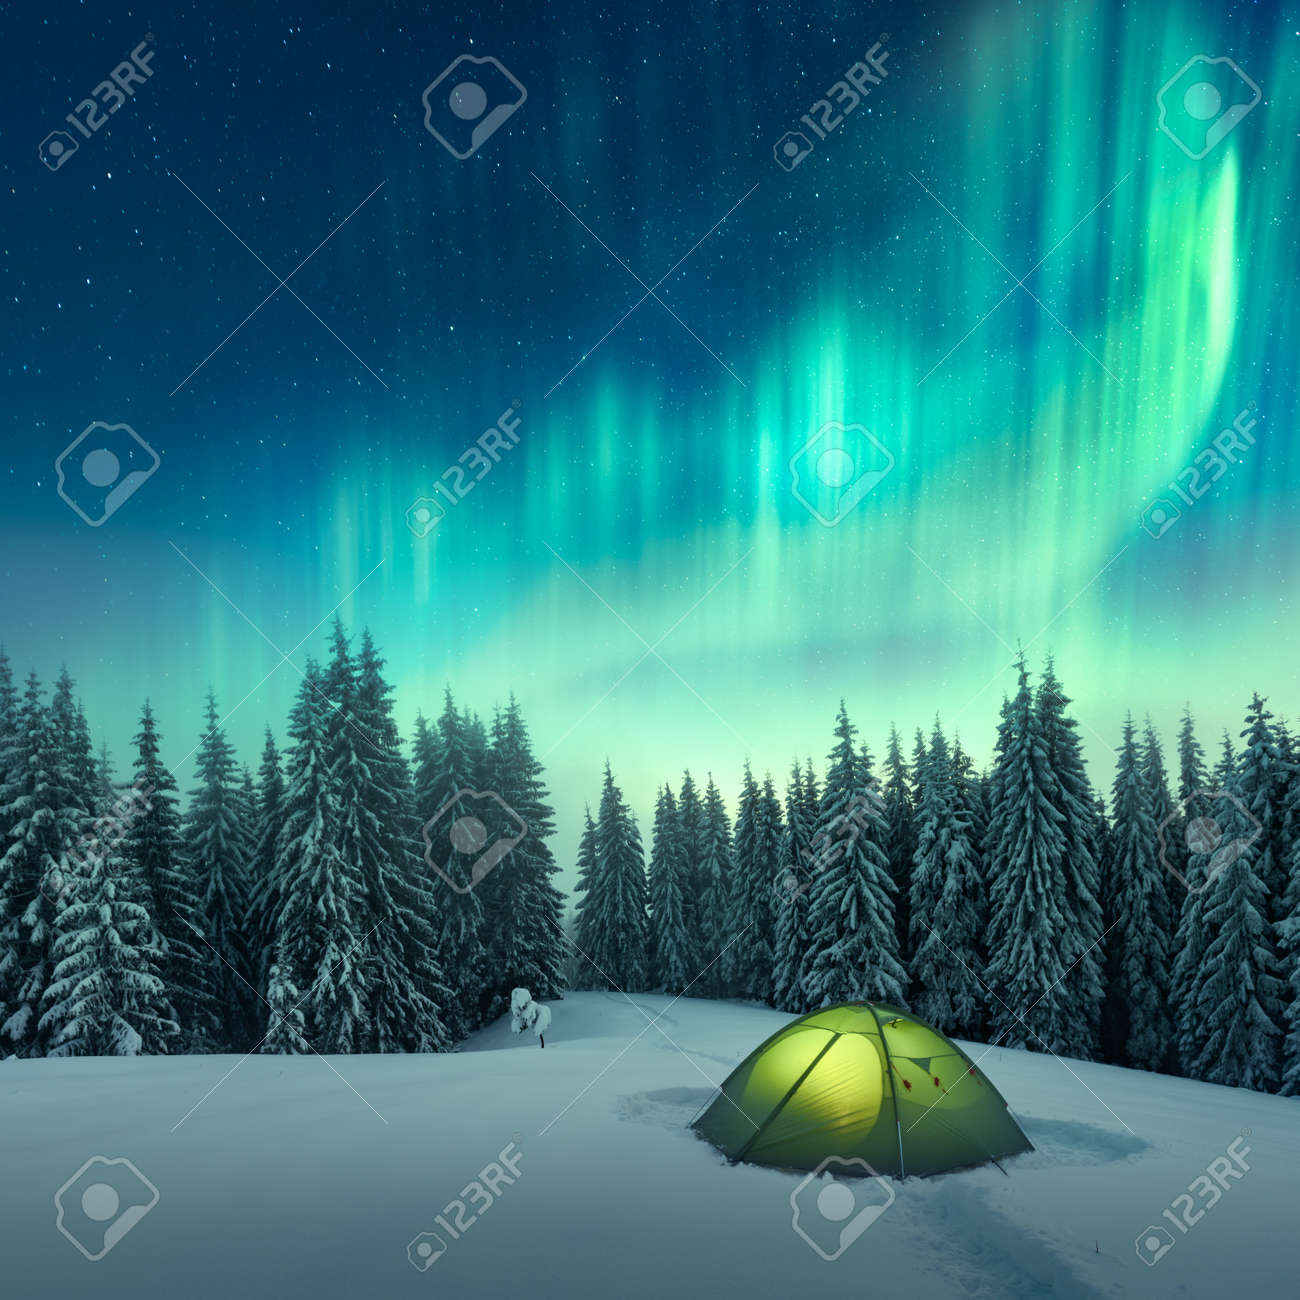 Aurora borealis  Northern lights in winter forest  Sky with polar